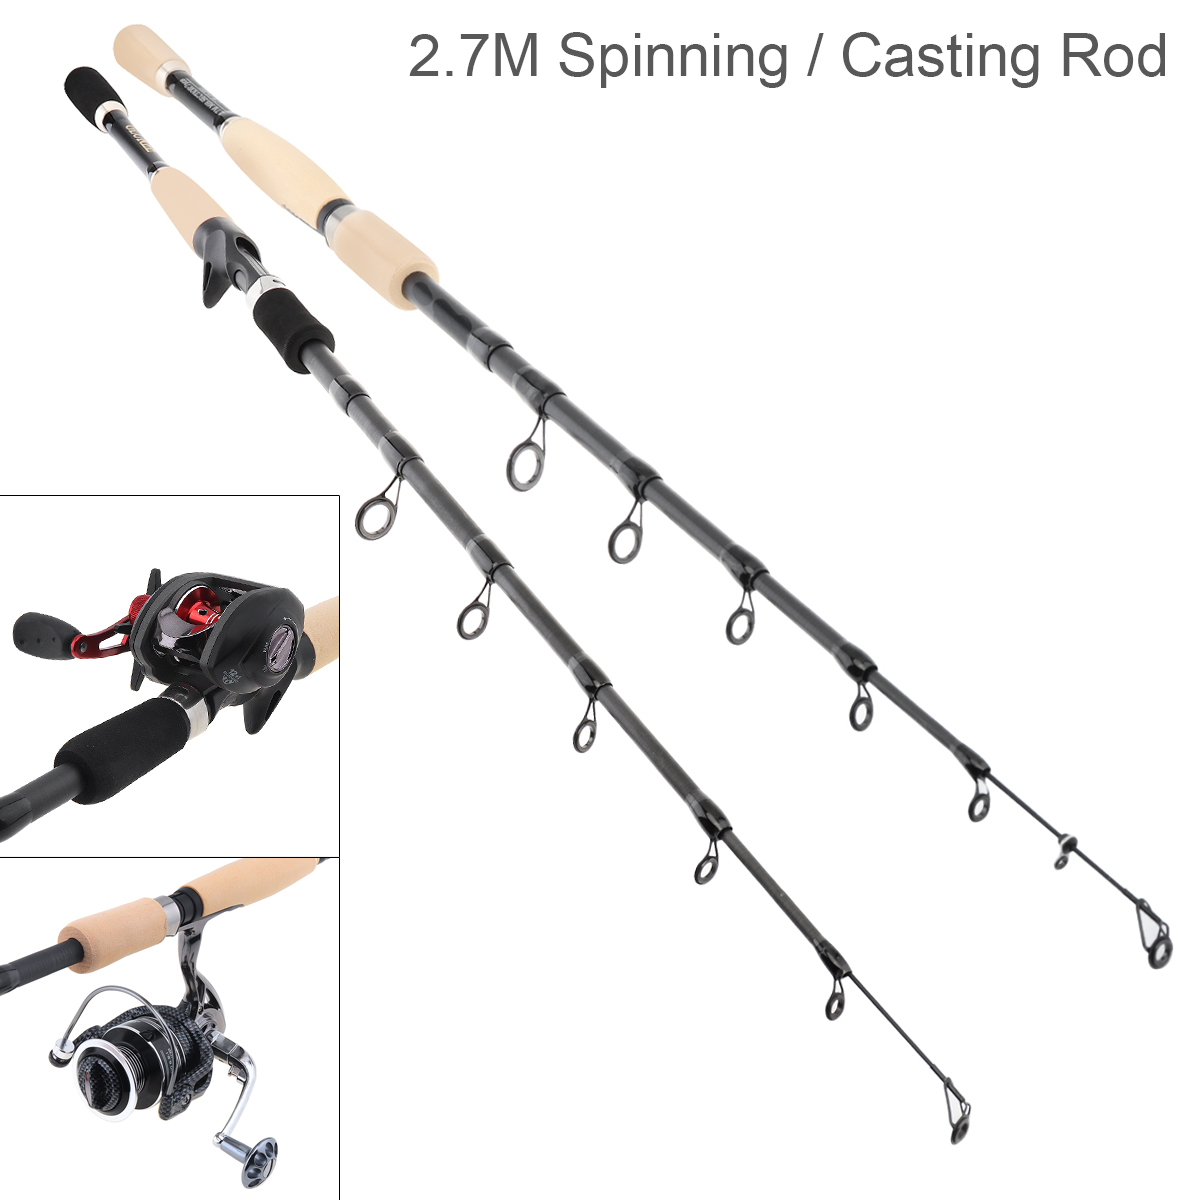 Casting-Fishing-Rod-Carbon-Fiber-Travel-Lure-Rod-Saltwater-Spinning-Fishing-Pole